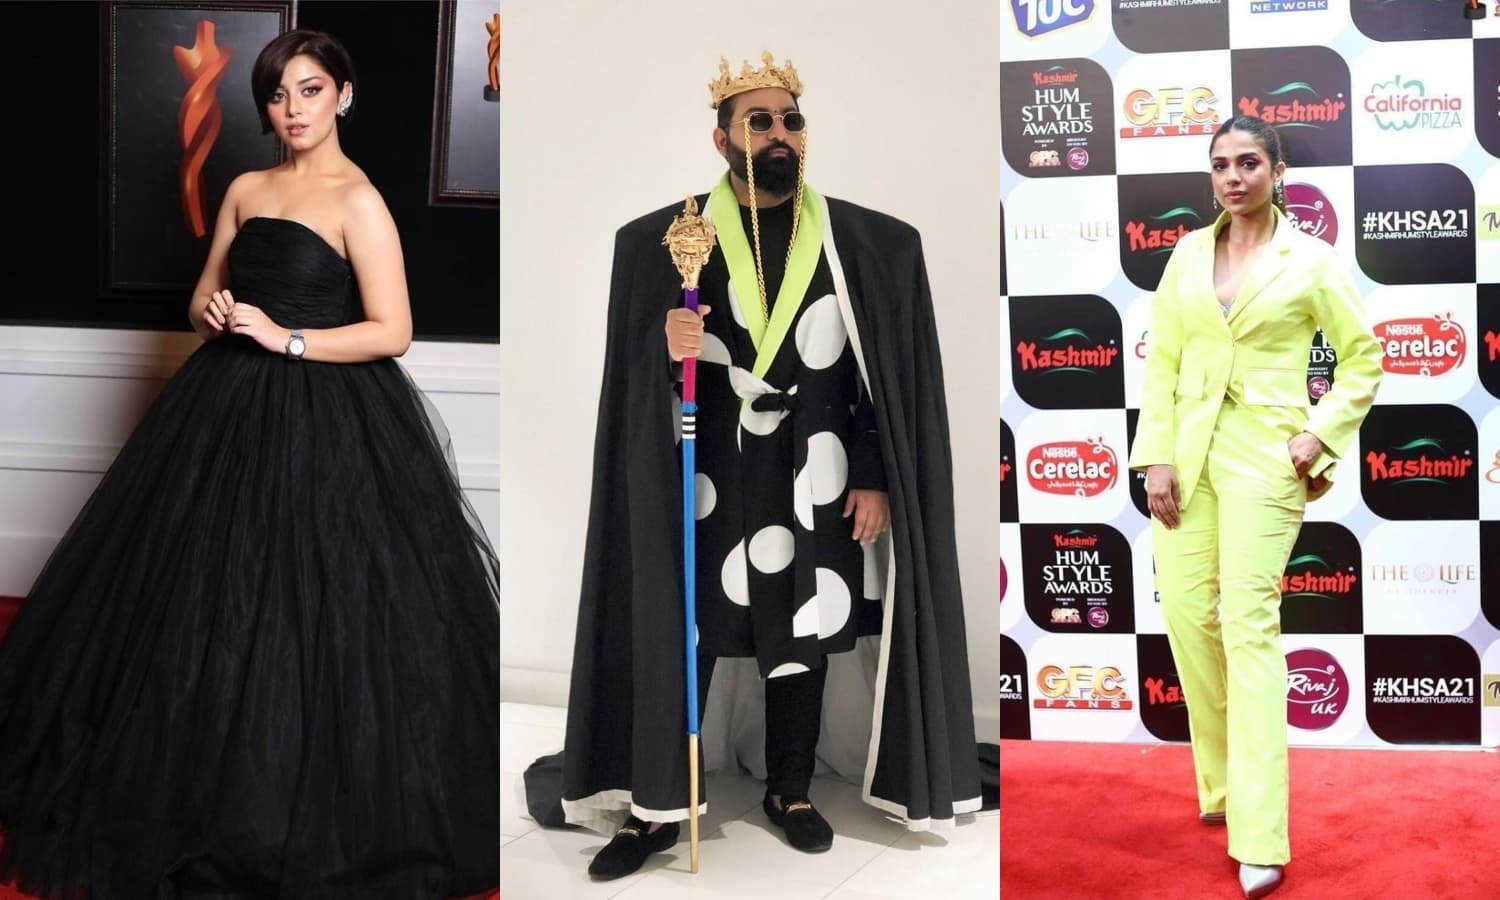 Even celebs didn't like the lack of style at the Hum Style Awards 2021